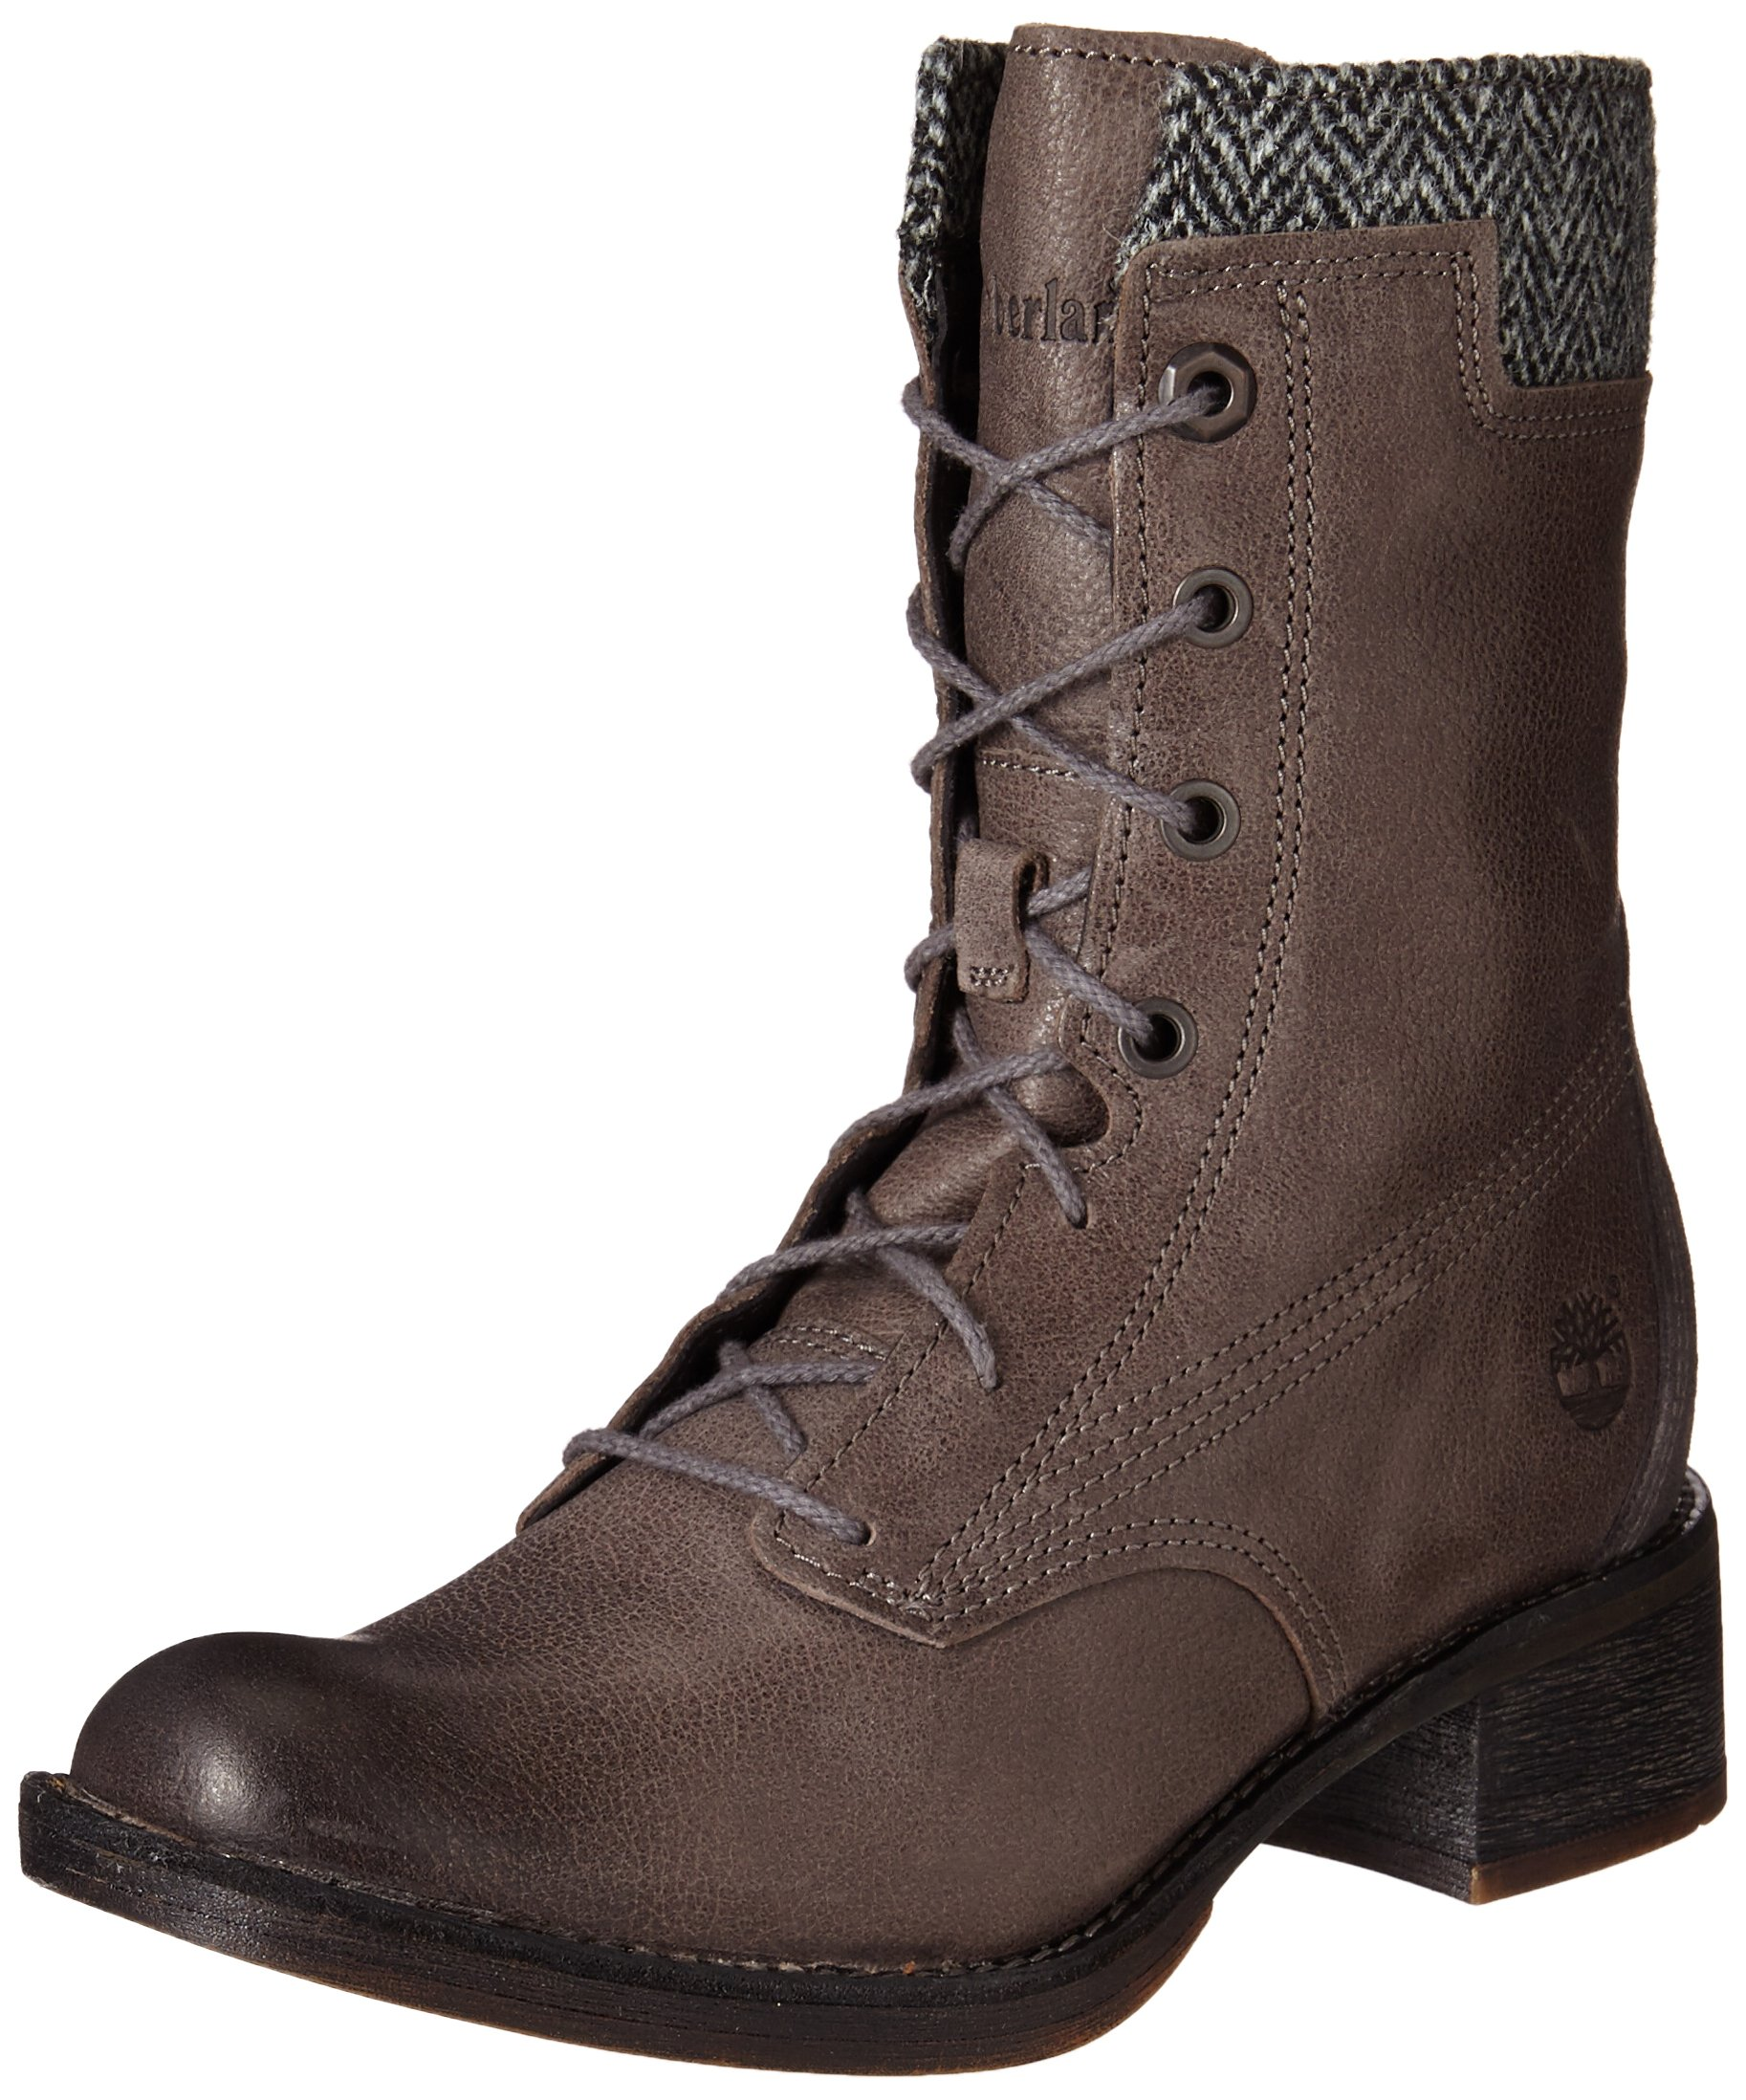 Timberland Women's Whittemore Lace-Up Boot, Dark Grey Woodlands/Grey Harris Tweed Wool, 10 M US